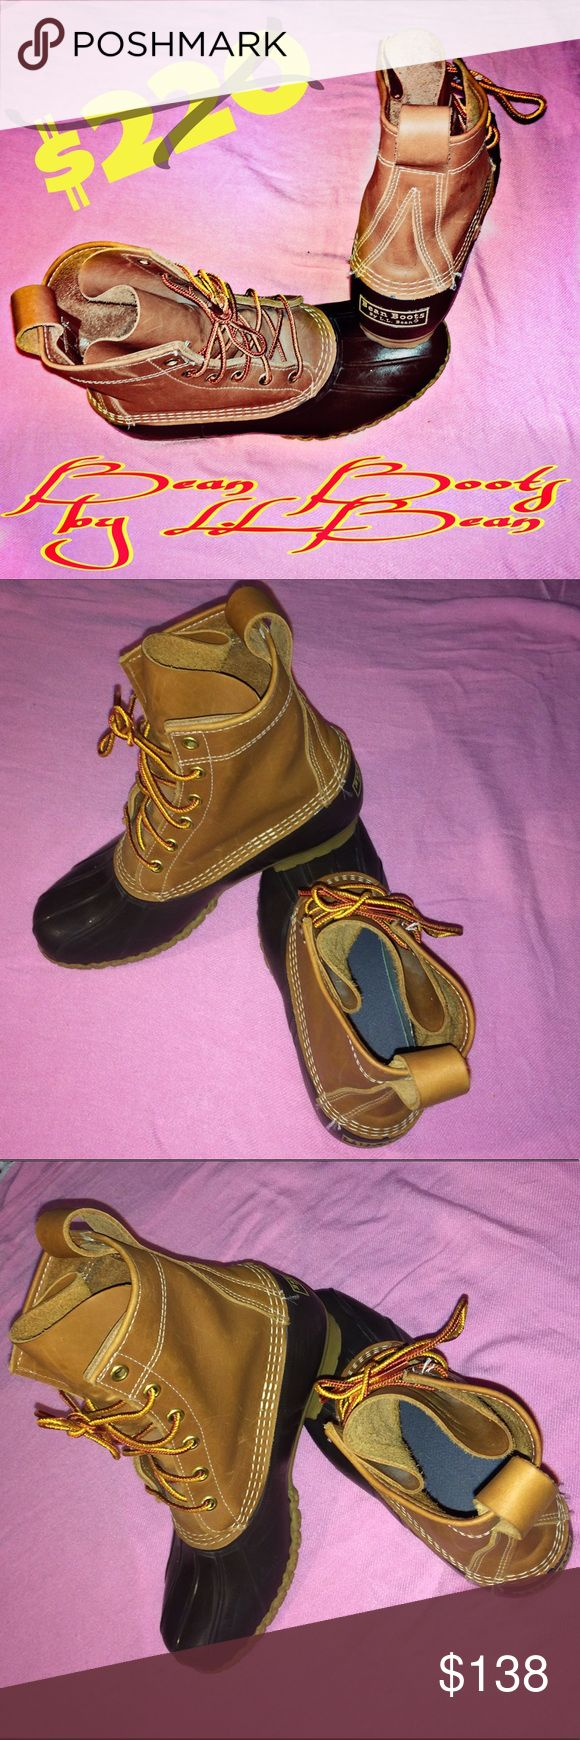 aSTEAL on LL Bean Duck Boots Size 8M THINSULATED ! These are some cool duck hunting, rain, snow, and hiking boots right here! Thinsulated. Size 8M (DM is the width) and 90%+ tread left! Not scuffed up either! They're hot and not so easy to come by! Brown leather/duck brown rubber/tan soles! Super clean and very lightly worn! Bean Boots by LL Bean is the boot to have! Sexy, stylish, and rugged! Waterproof to the core! They sale out fast at this price! Like and share- I return! My goal is to…